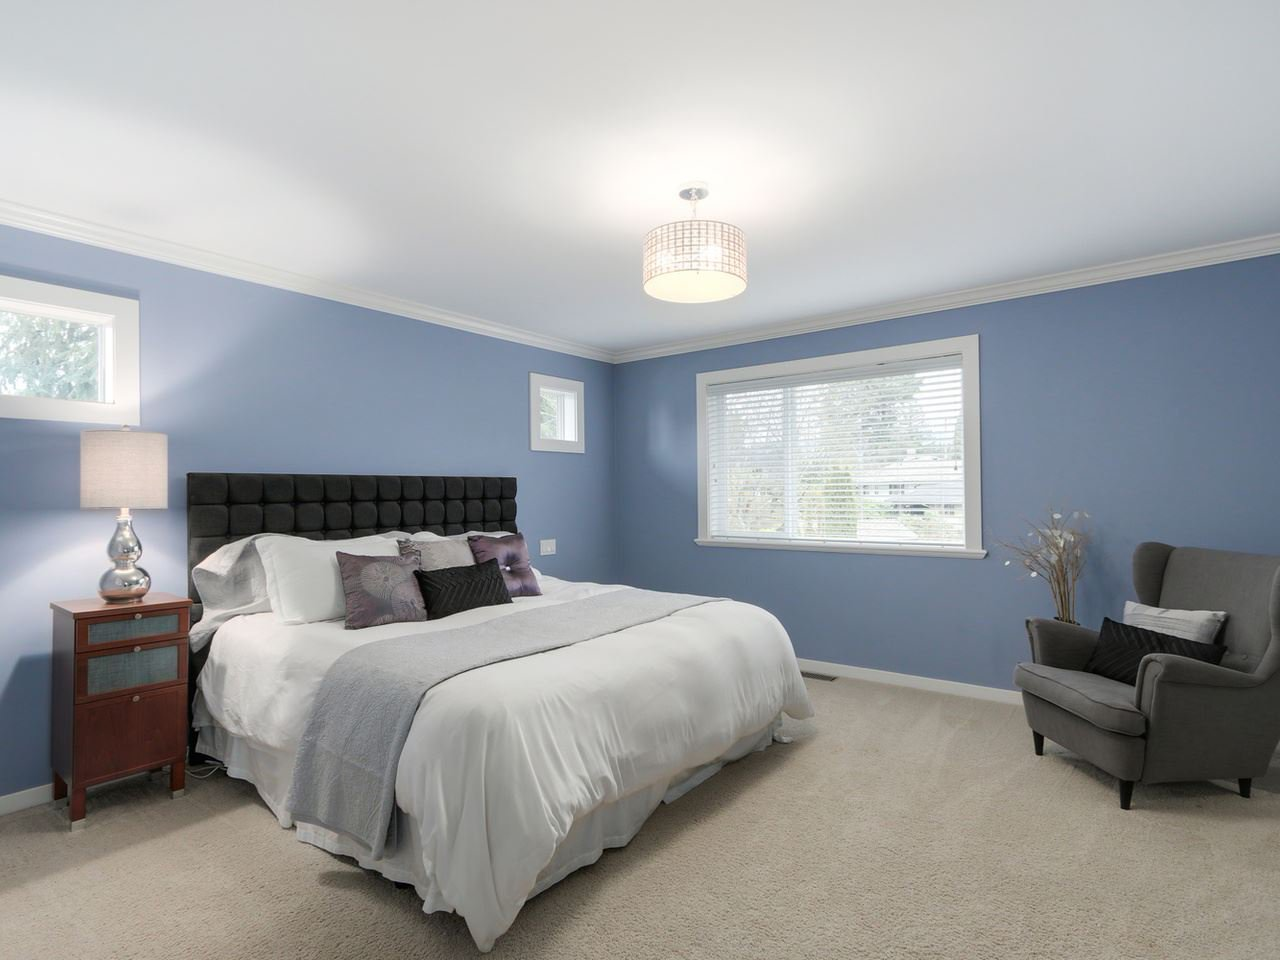 Photo 12: Photos: 826 COYLTON PLACE in Port Moody: Glenayre House for sale : MLS®# R2042044